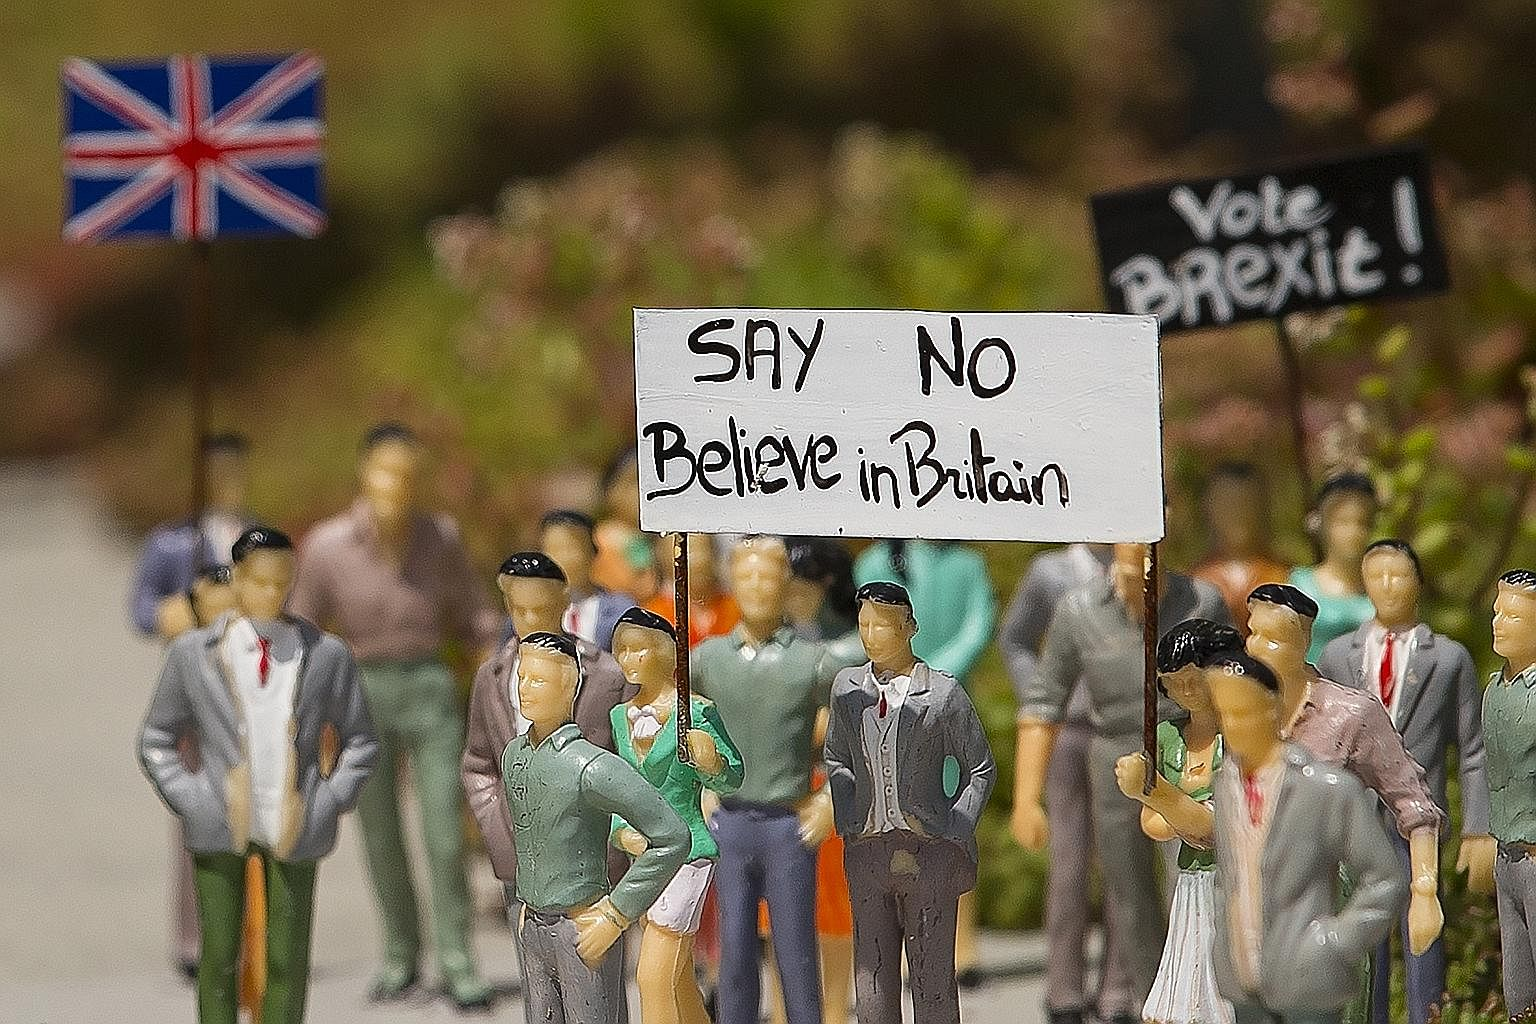 Miniature figures representing the debate for Britain leaving the EU on display at the Mini Europe theme park in Brussels, Belgium.